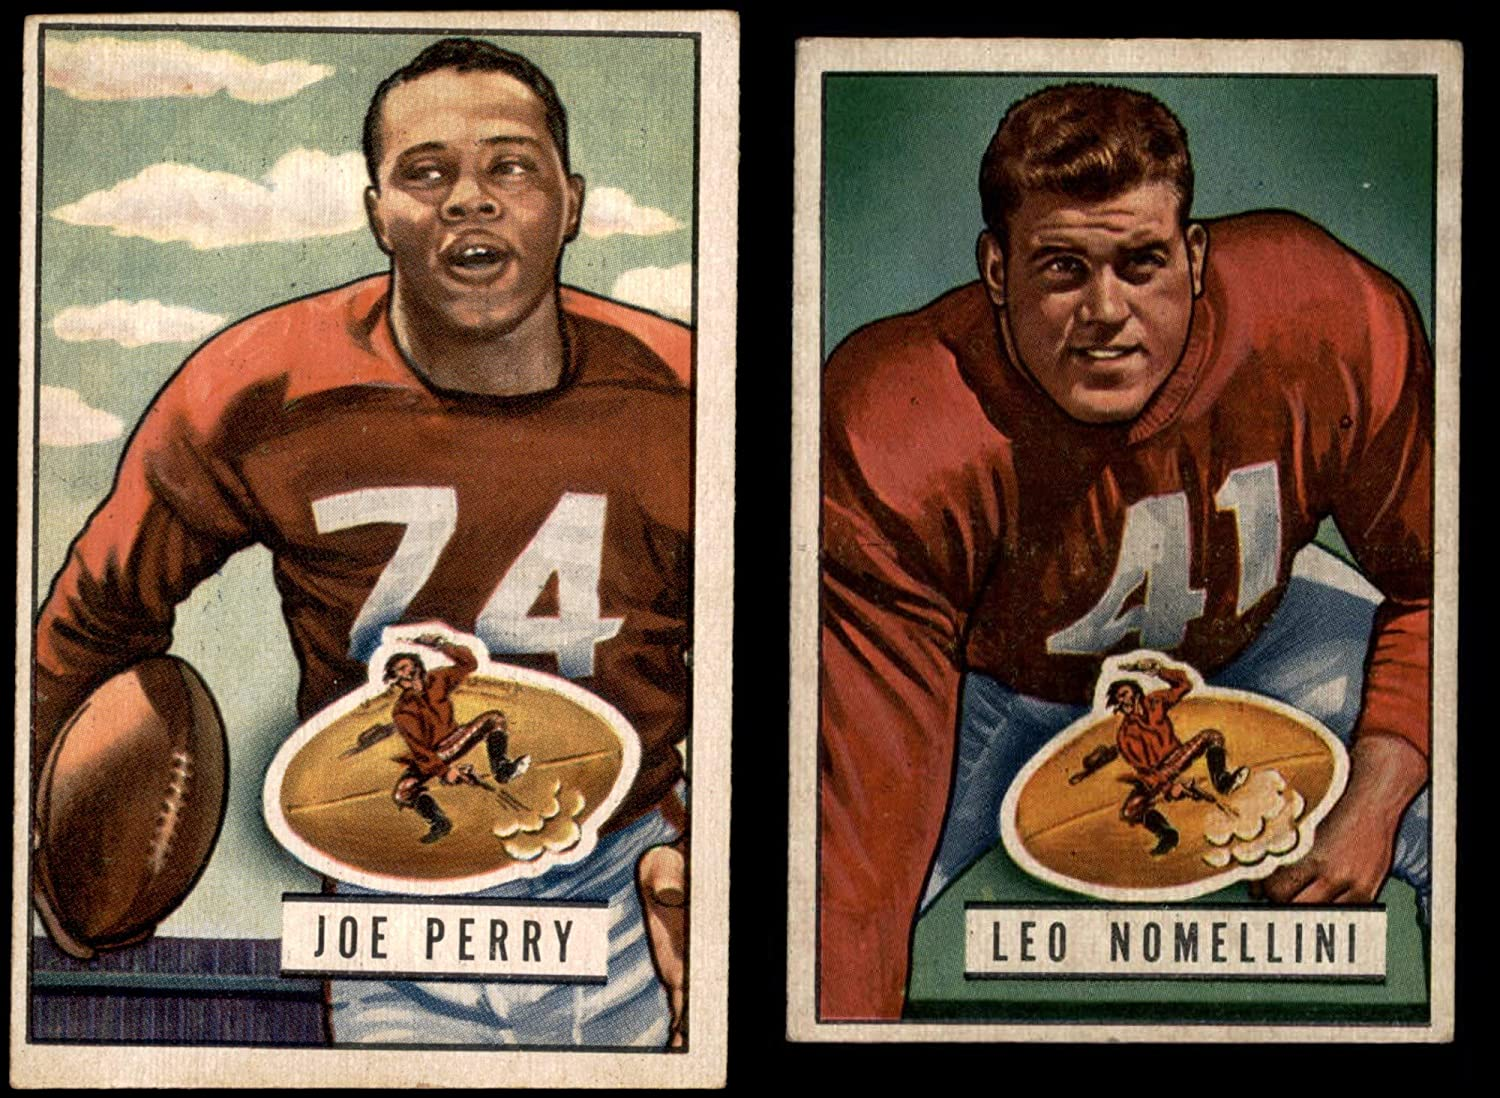 1951 Bowman San Francisco 49ers Team Set San Francisco 49ers (Baseball Set) Dean's Cards 5 - EX 49ers 81x5oe42haLSL1500_